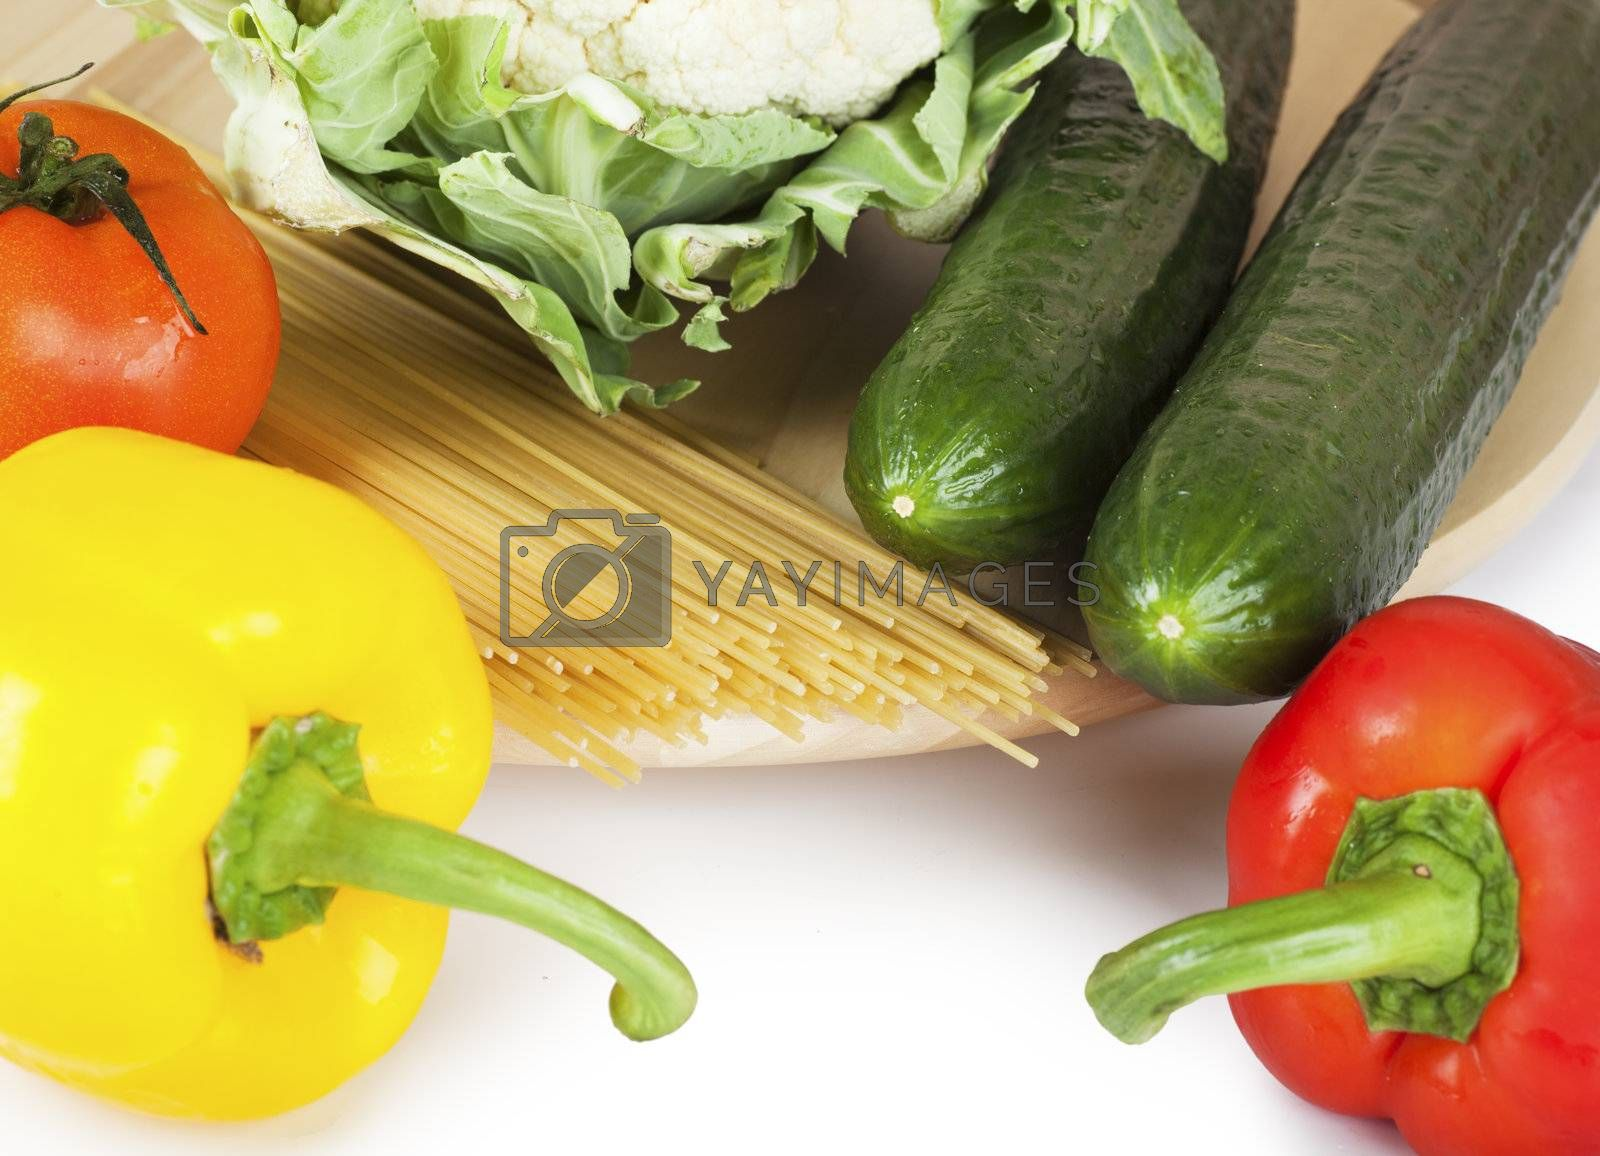 Vegetables (pepper, tomato, caulflower, cucumber) and spaghetti over white background